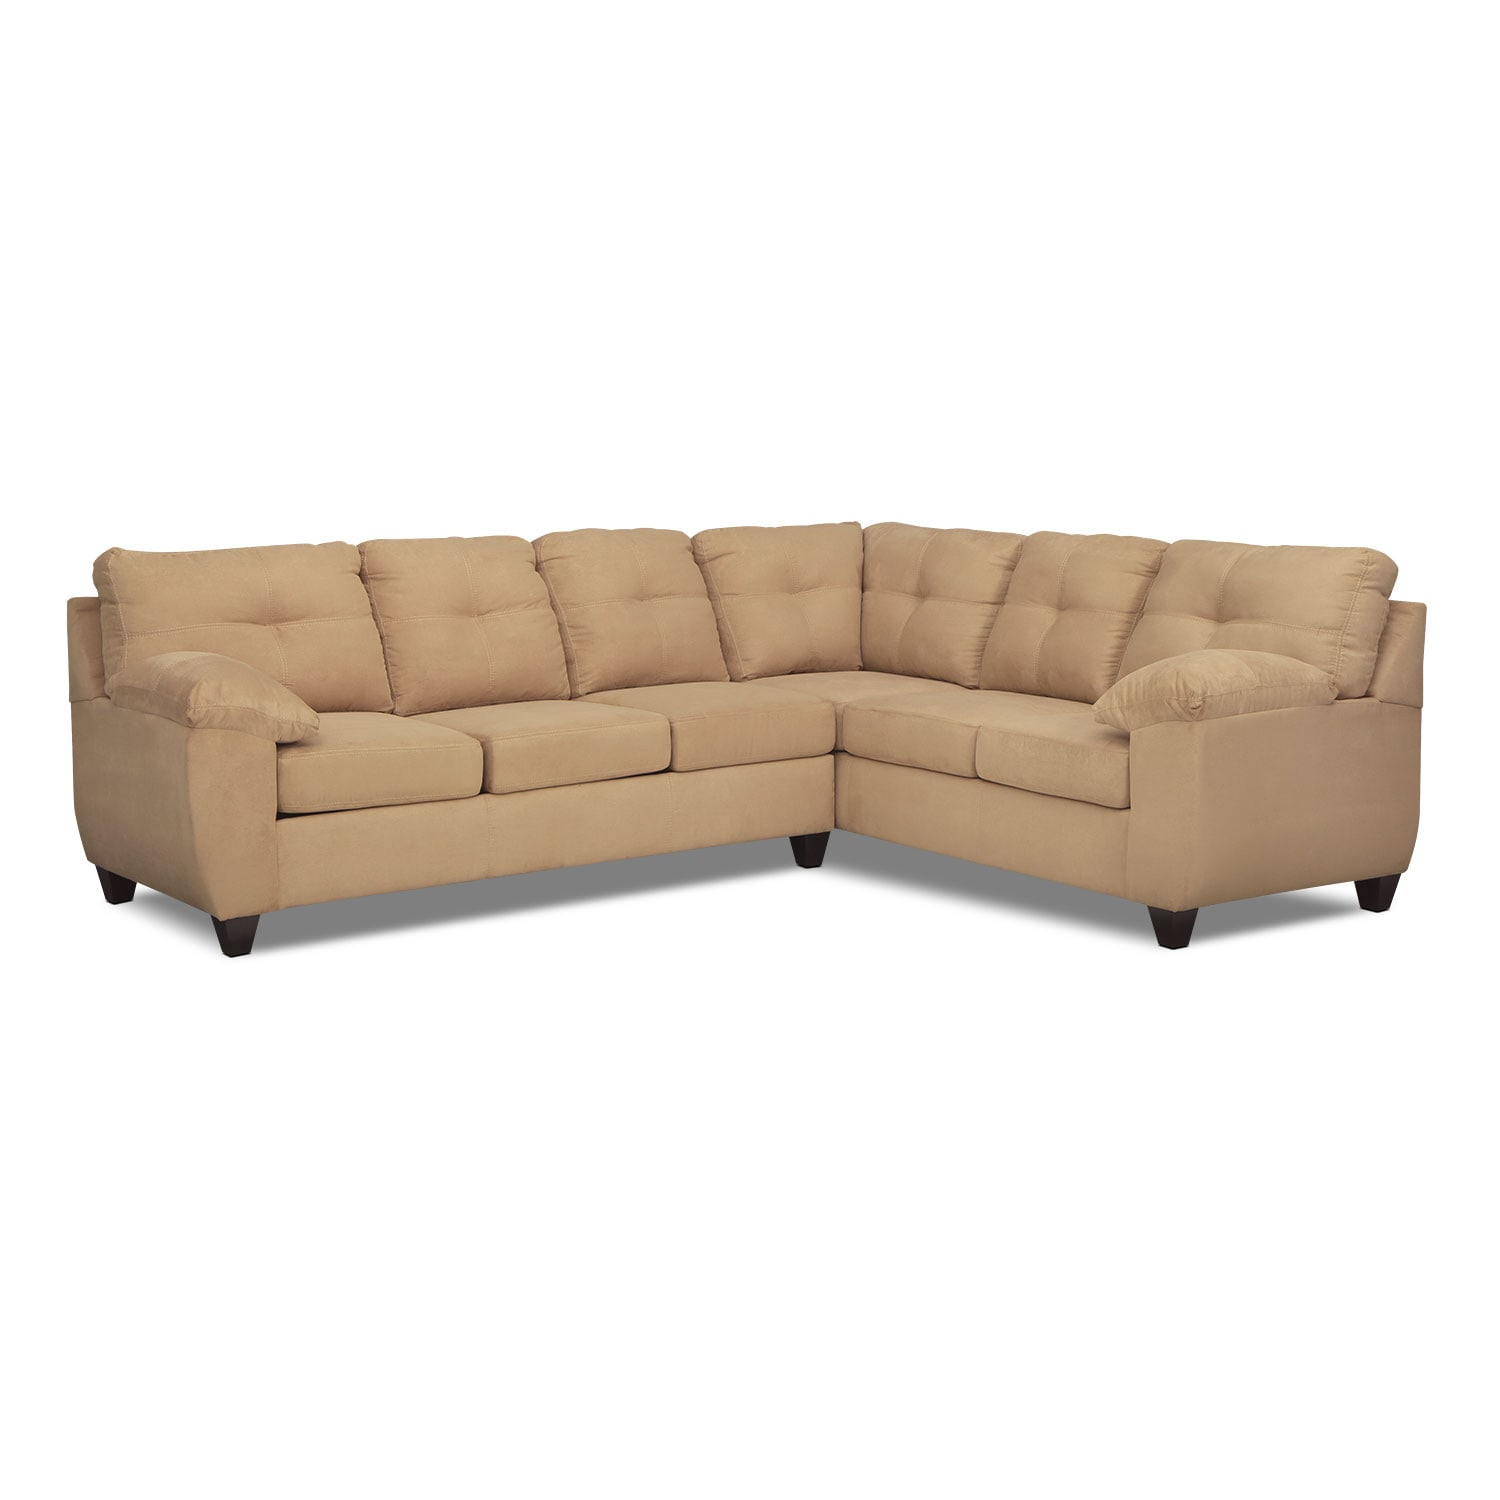 Living Room Furniture - Rialto Camel 2 Pc. Left-Facing Memory Foam Sleeper Sectional